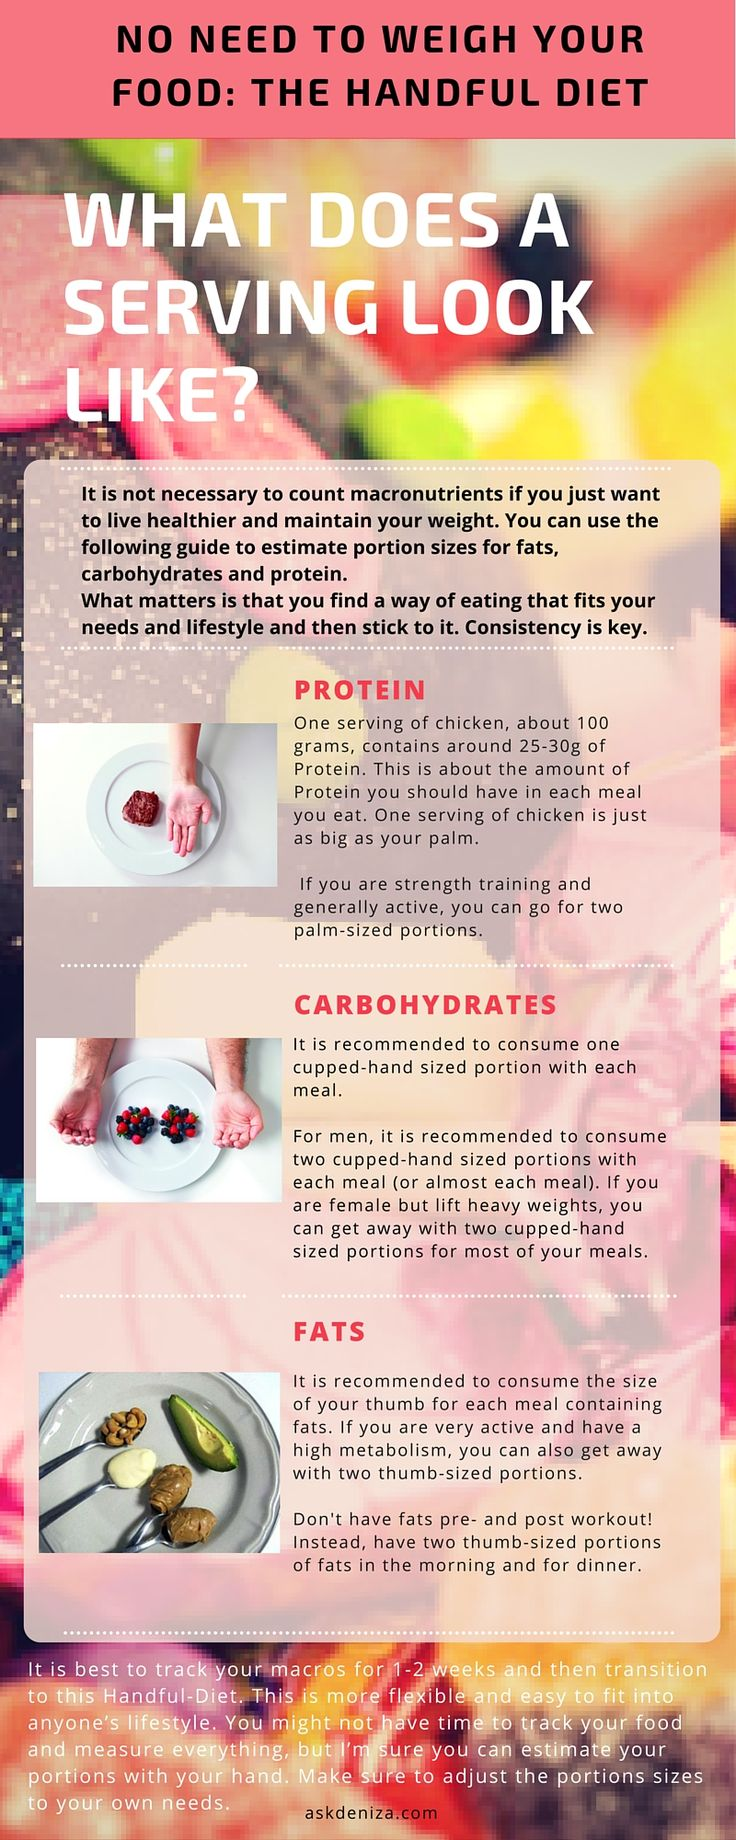 What dies a serving of protein, carbs and fats look like? Use the handful diet…